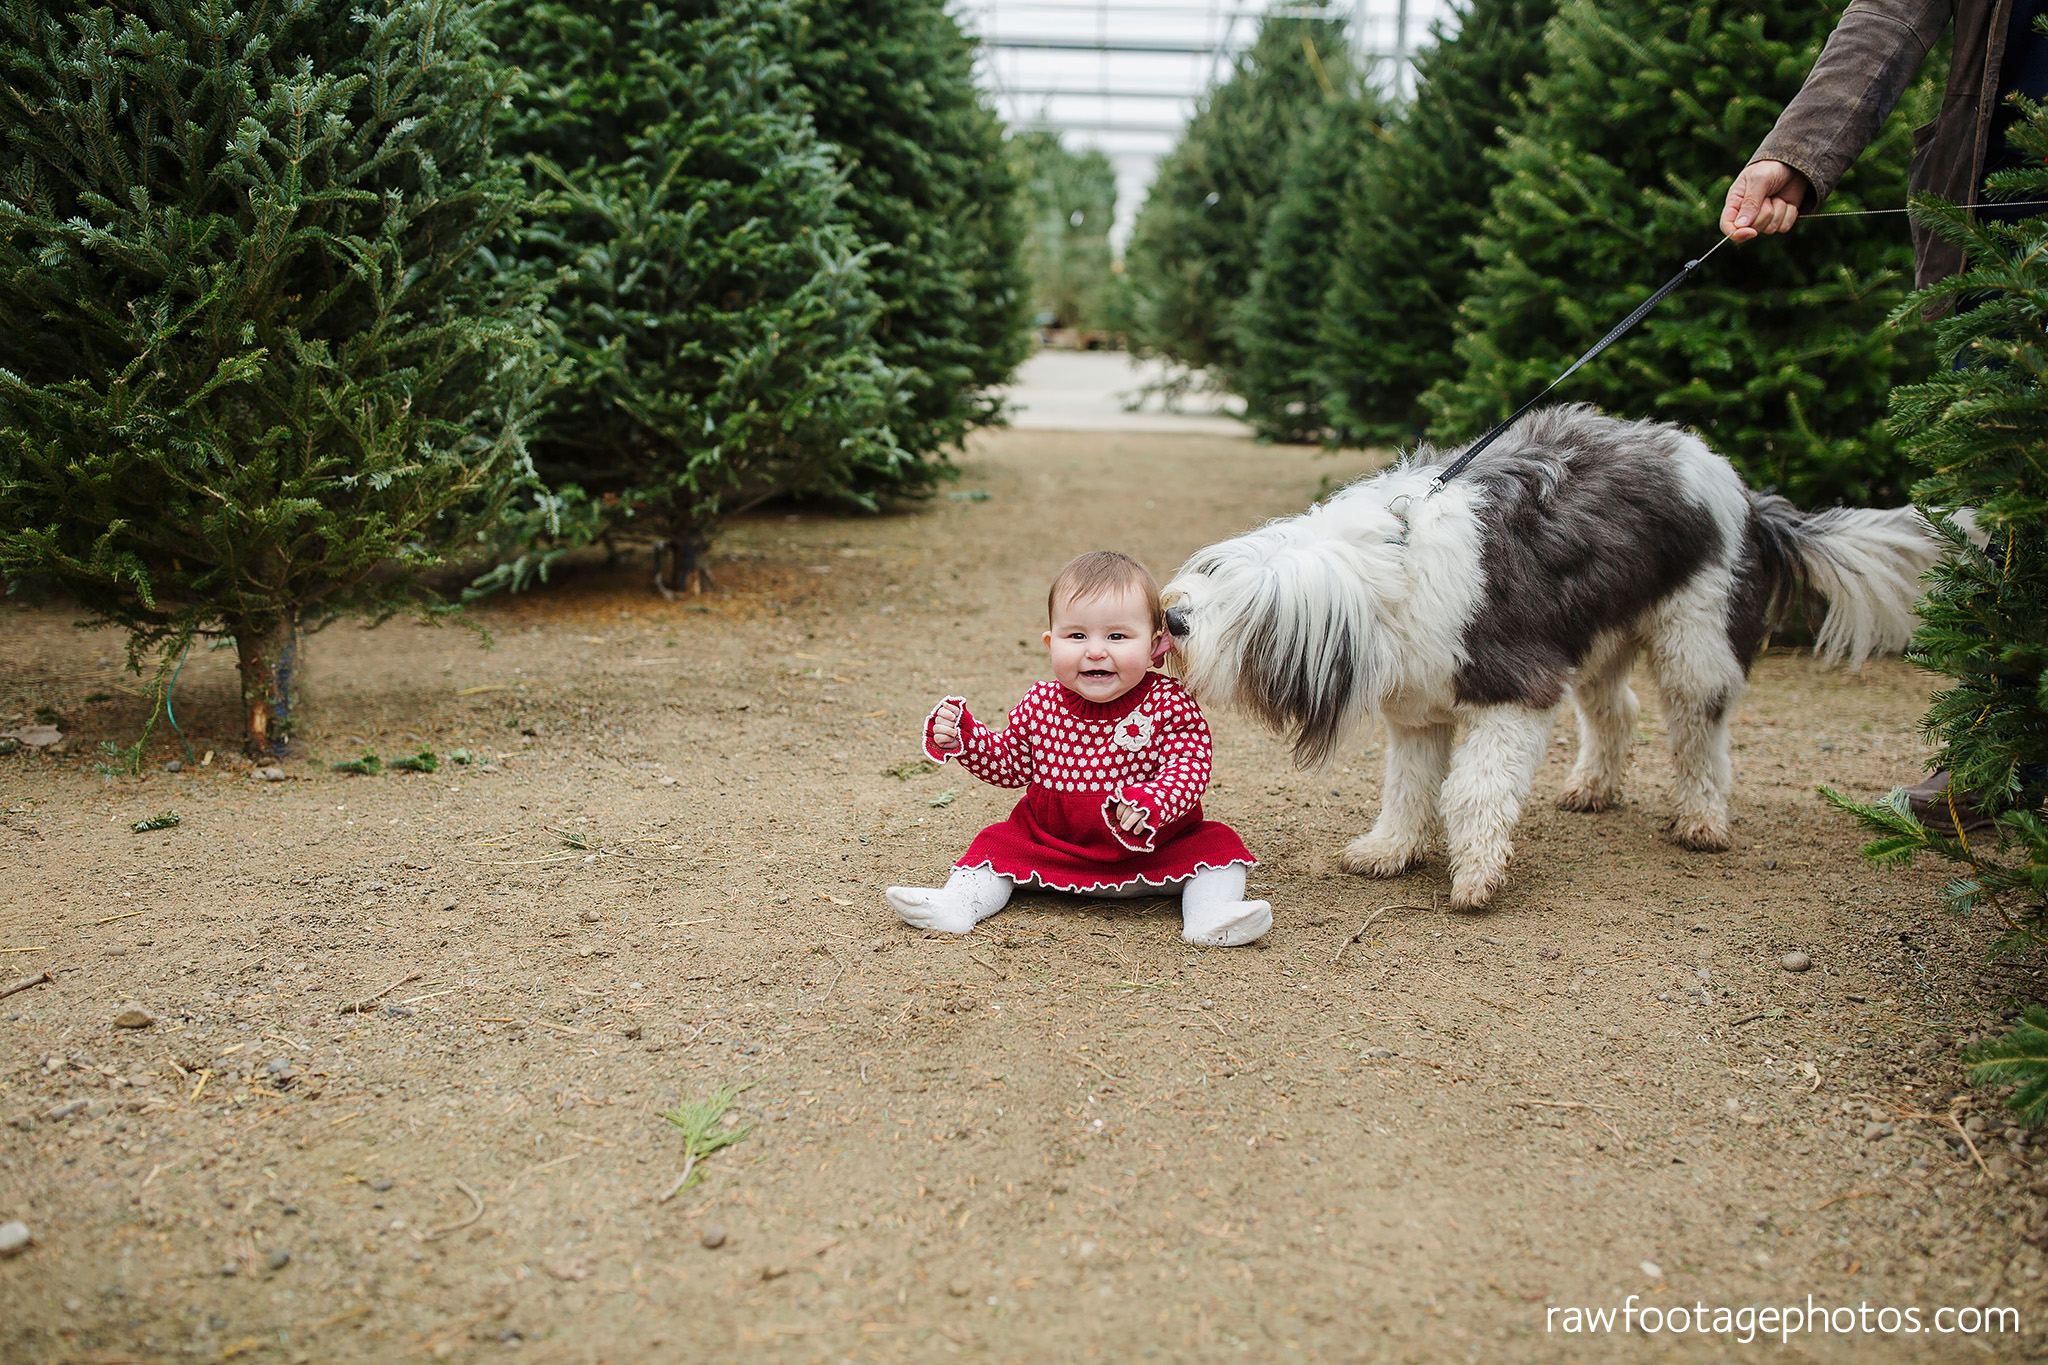 london_ontario_family_session_greenhouse-train_bridge-baby_girl-dog-raw_footage_photography024.jpg